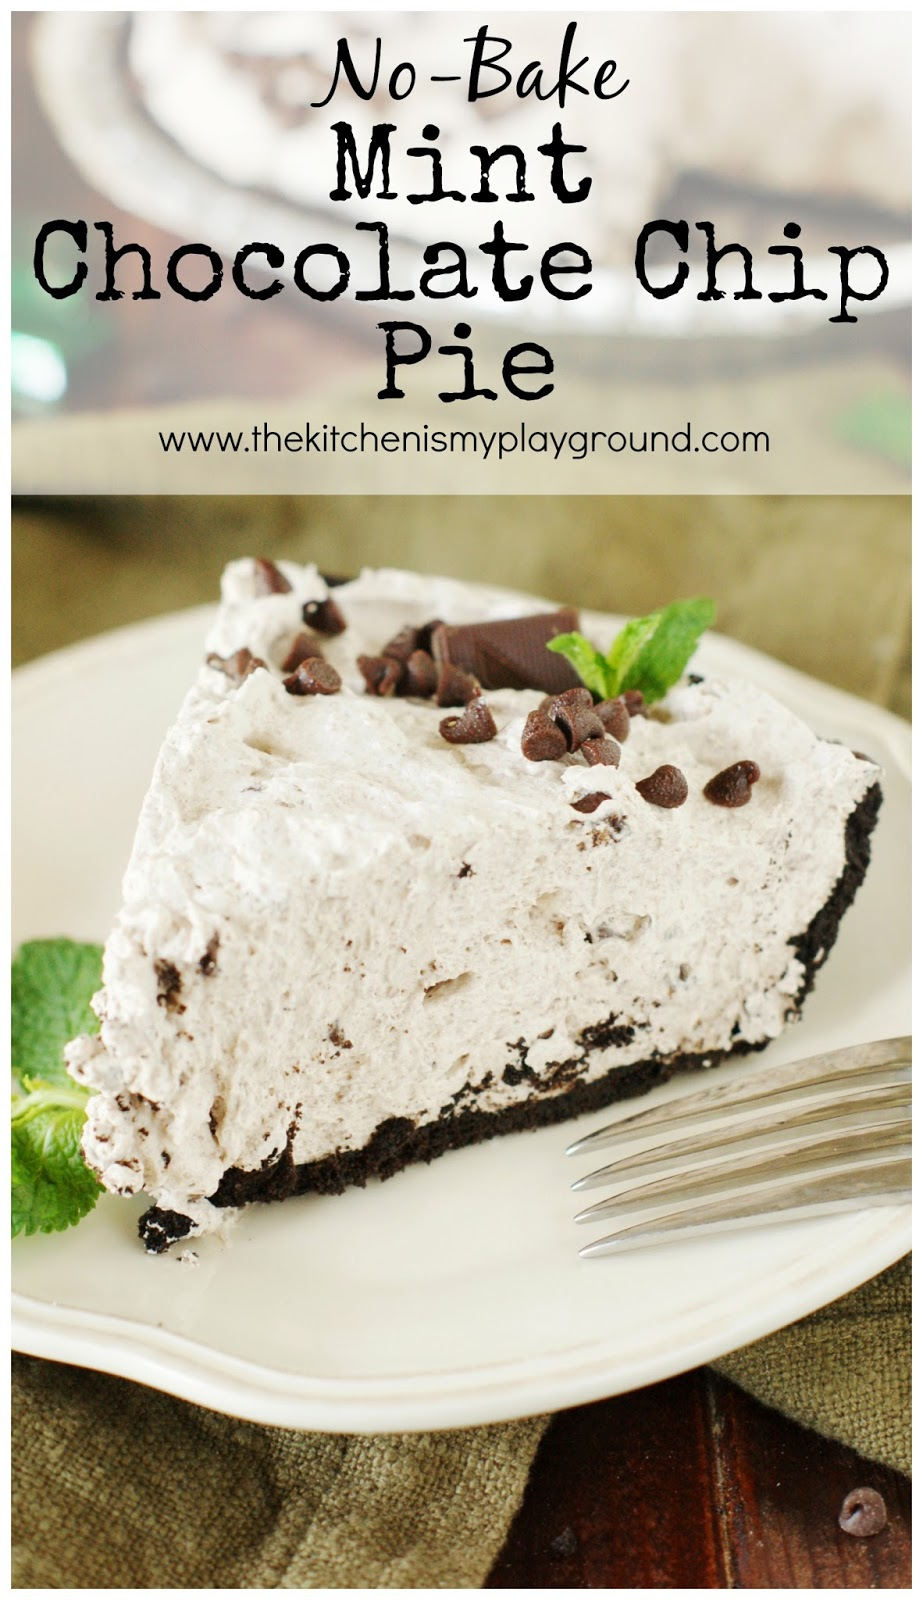 No-Bake Mint Chocolate Chip Pie - The Kitchen is My Playground